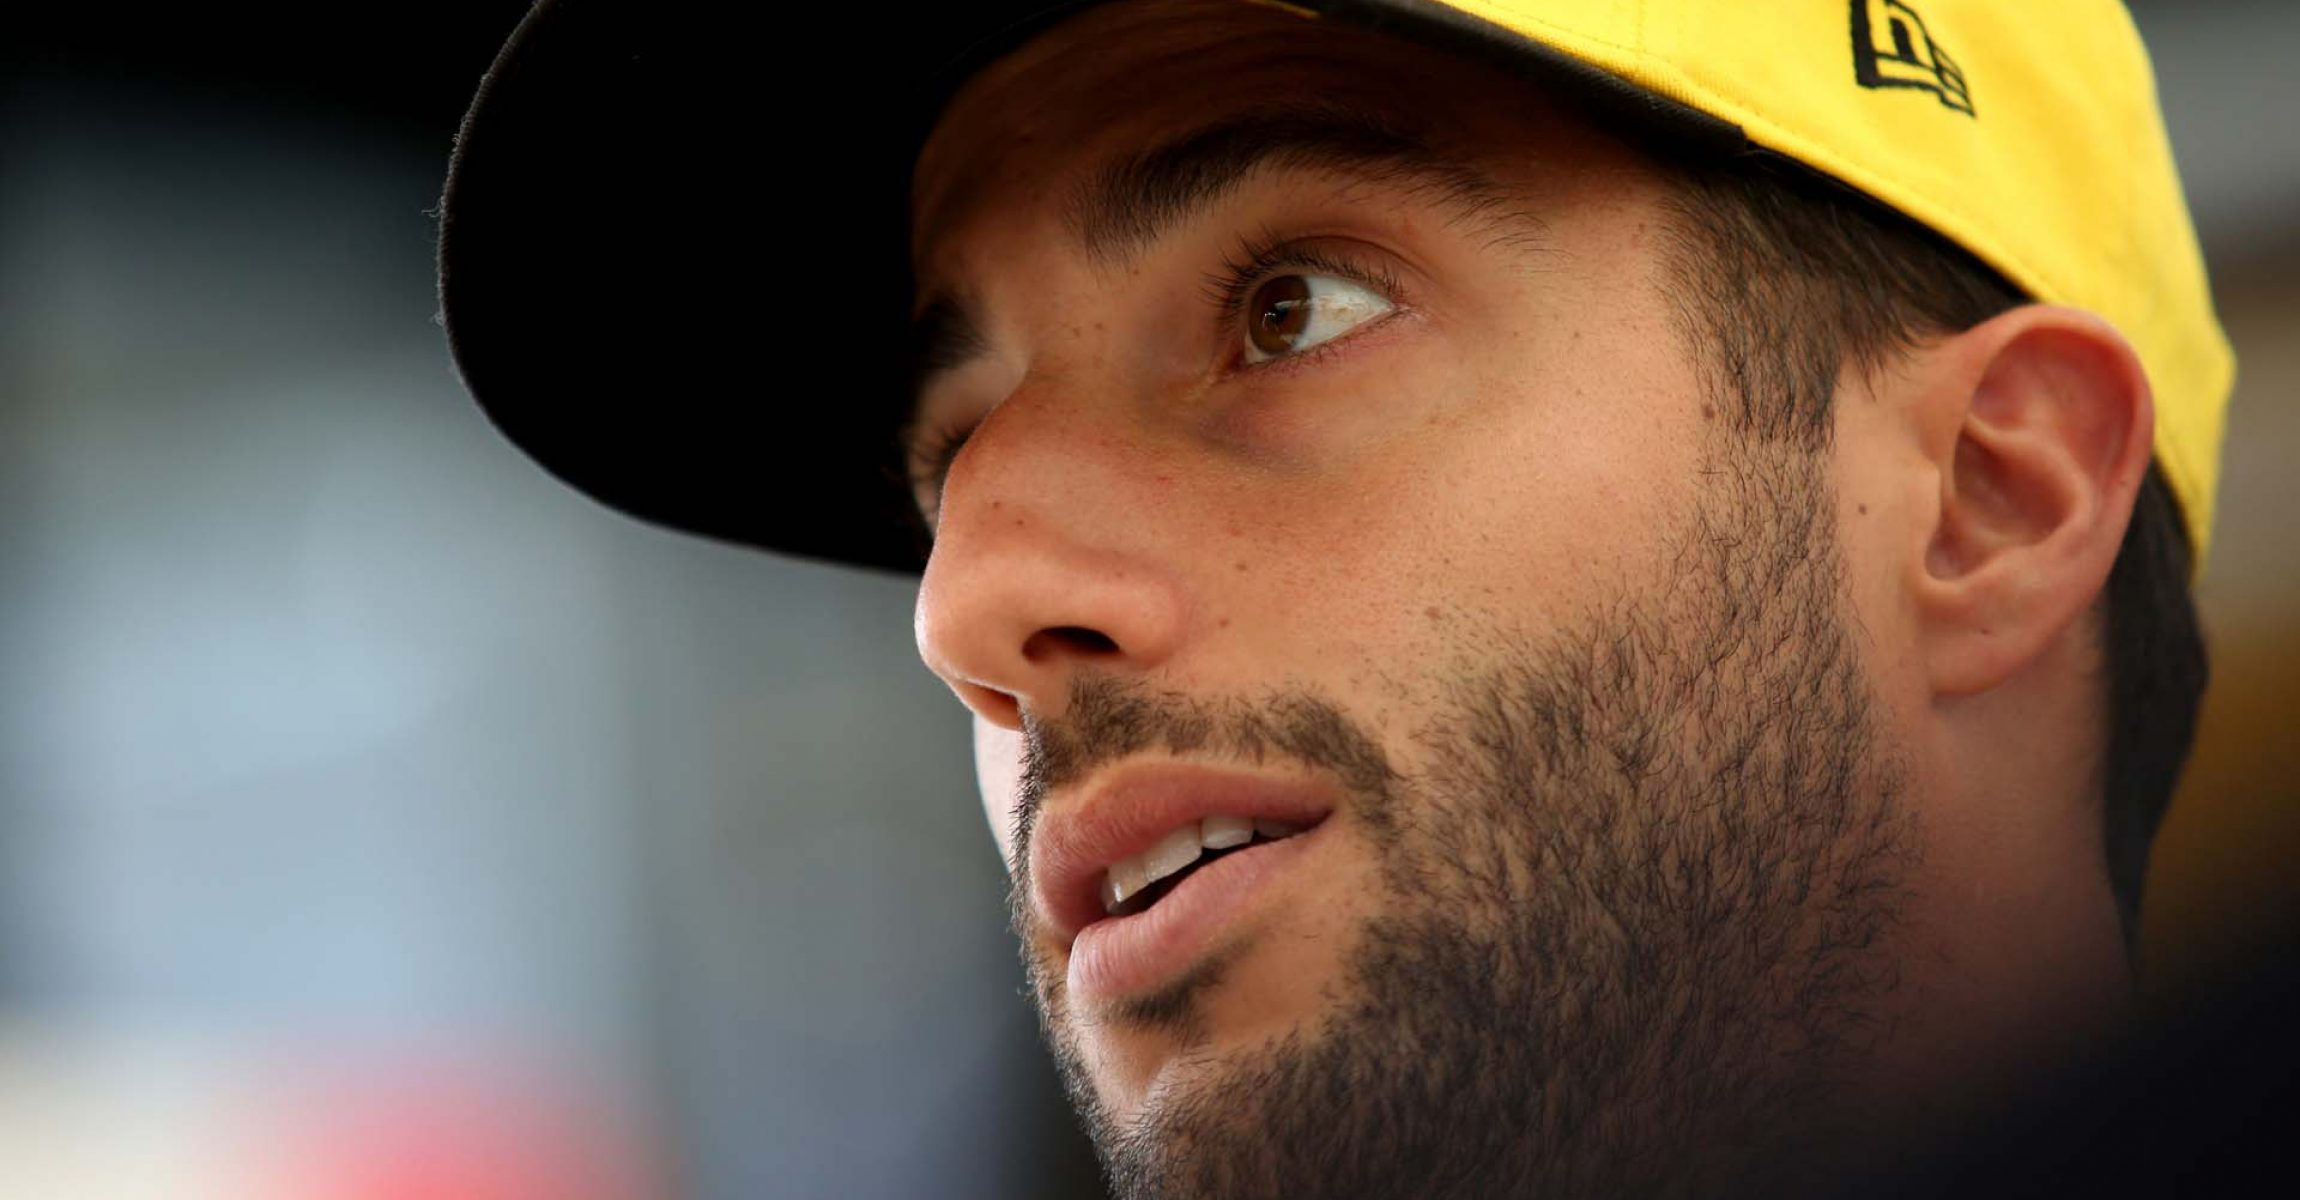 Daniel Ricciardo (AUS) Renault F1 Team. Italian Grand Prix, Thursday 5th September 2019. Monza Italy.